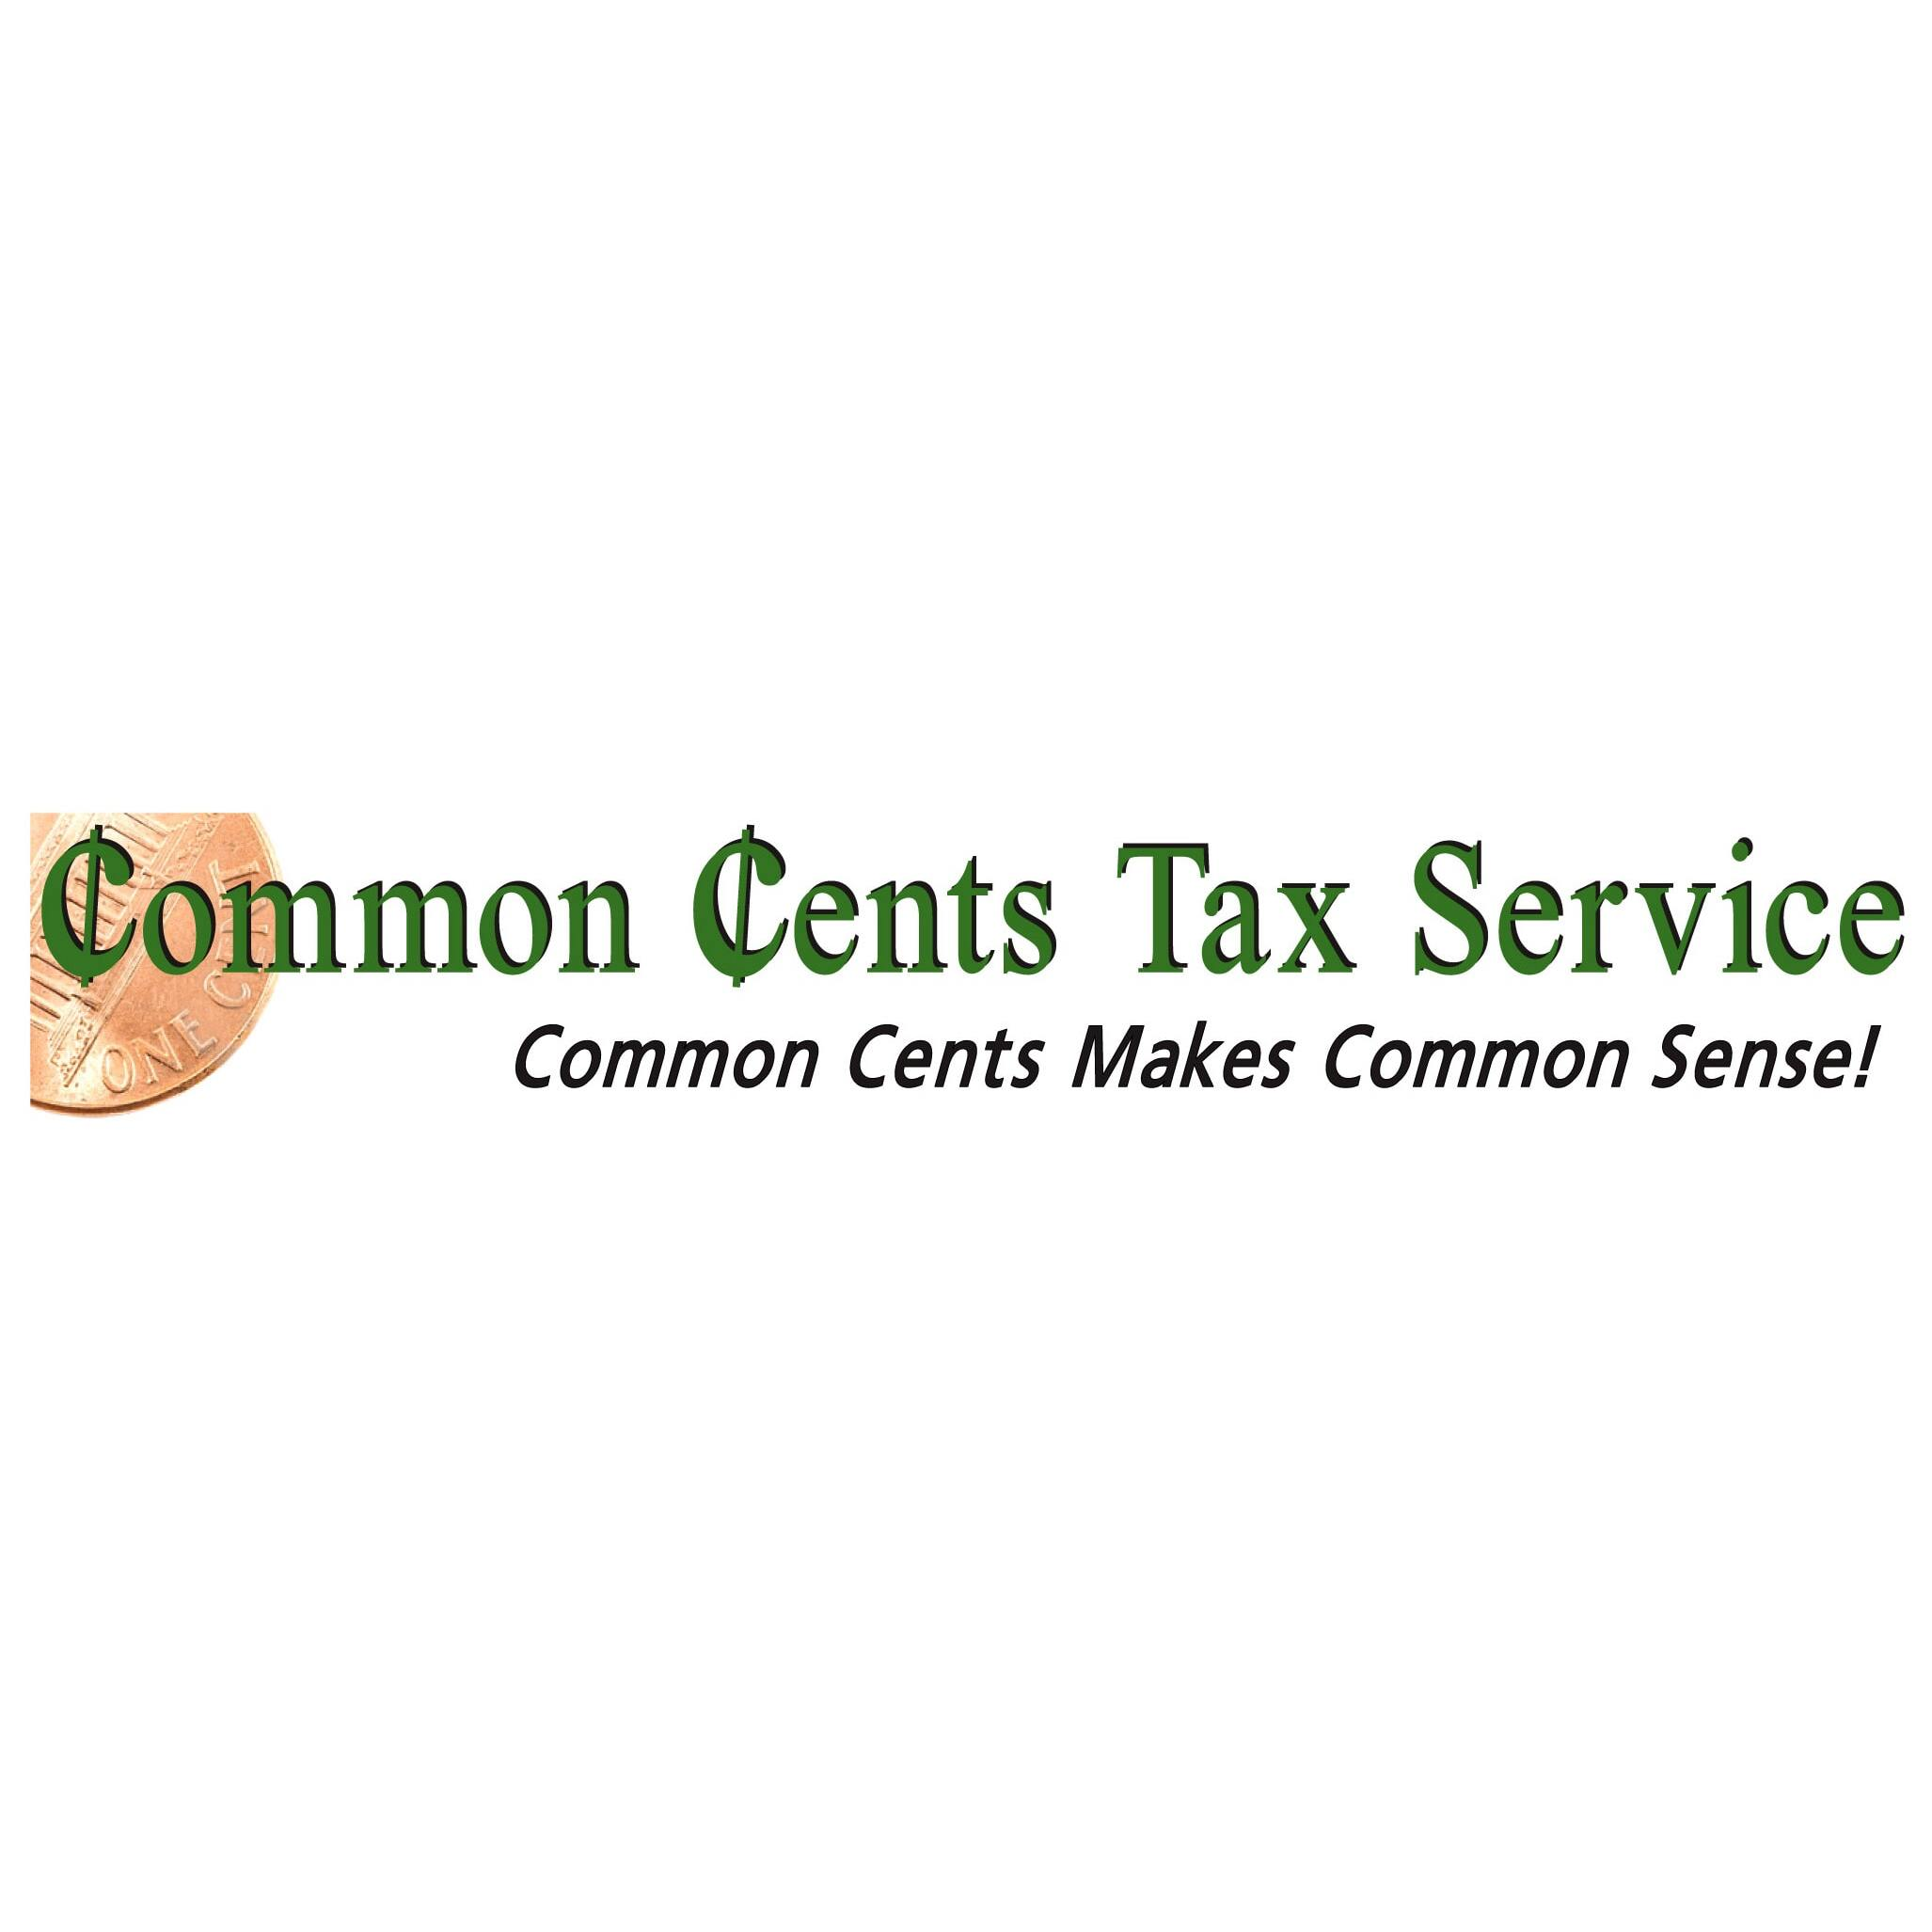 Common Cents Tax Service